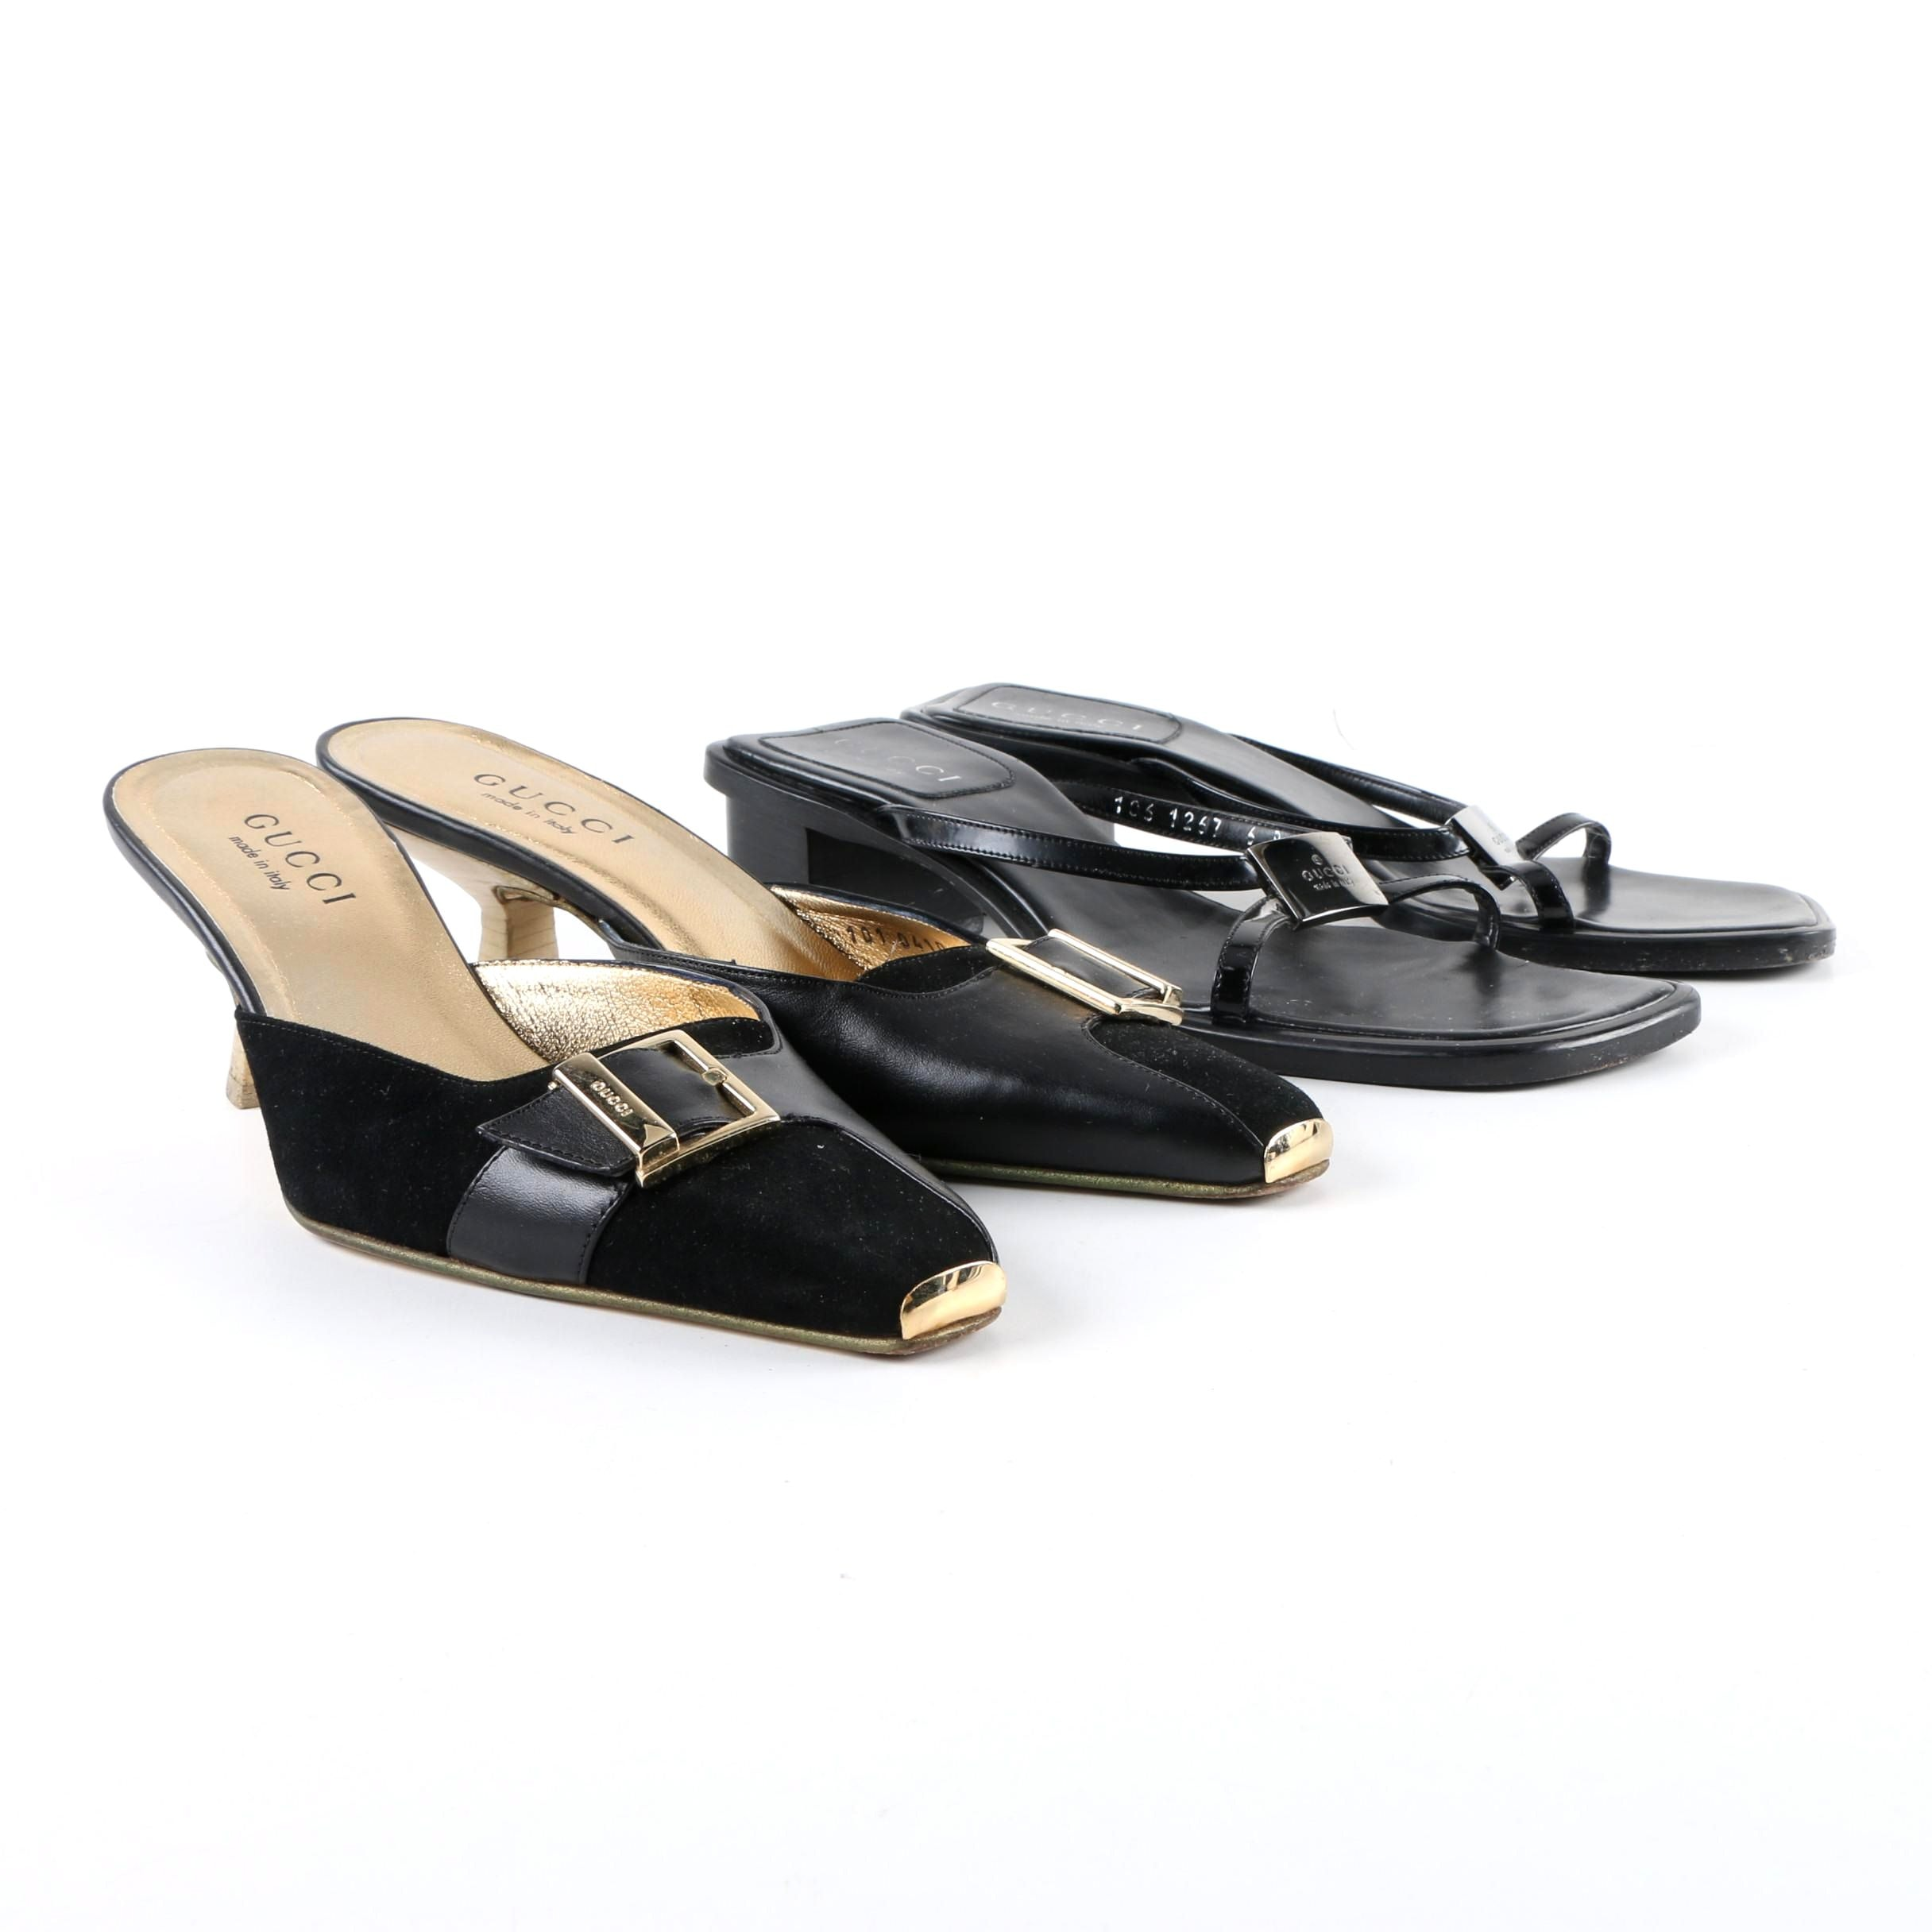 Women's Gucci Black Leather Kitten Heel Slides and Mules